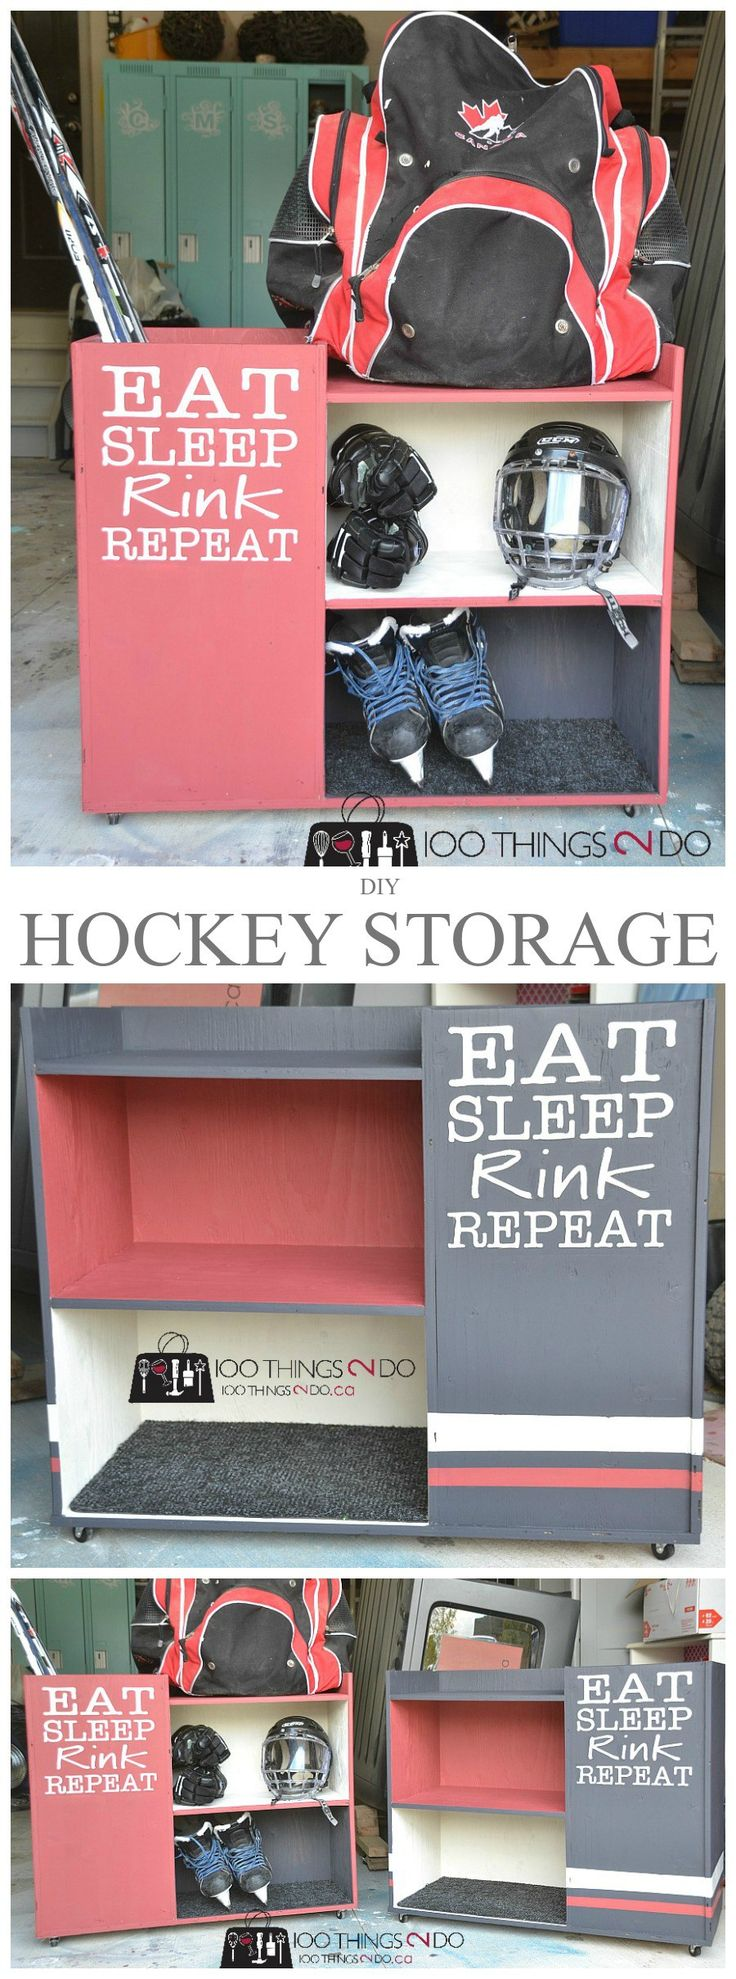 Hockey storage, sports storage, DIY hockey storage rack, DIY sports rack